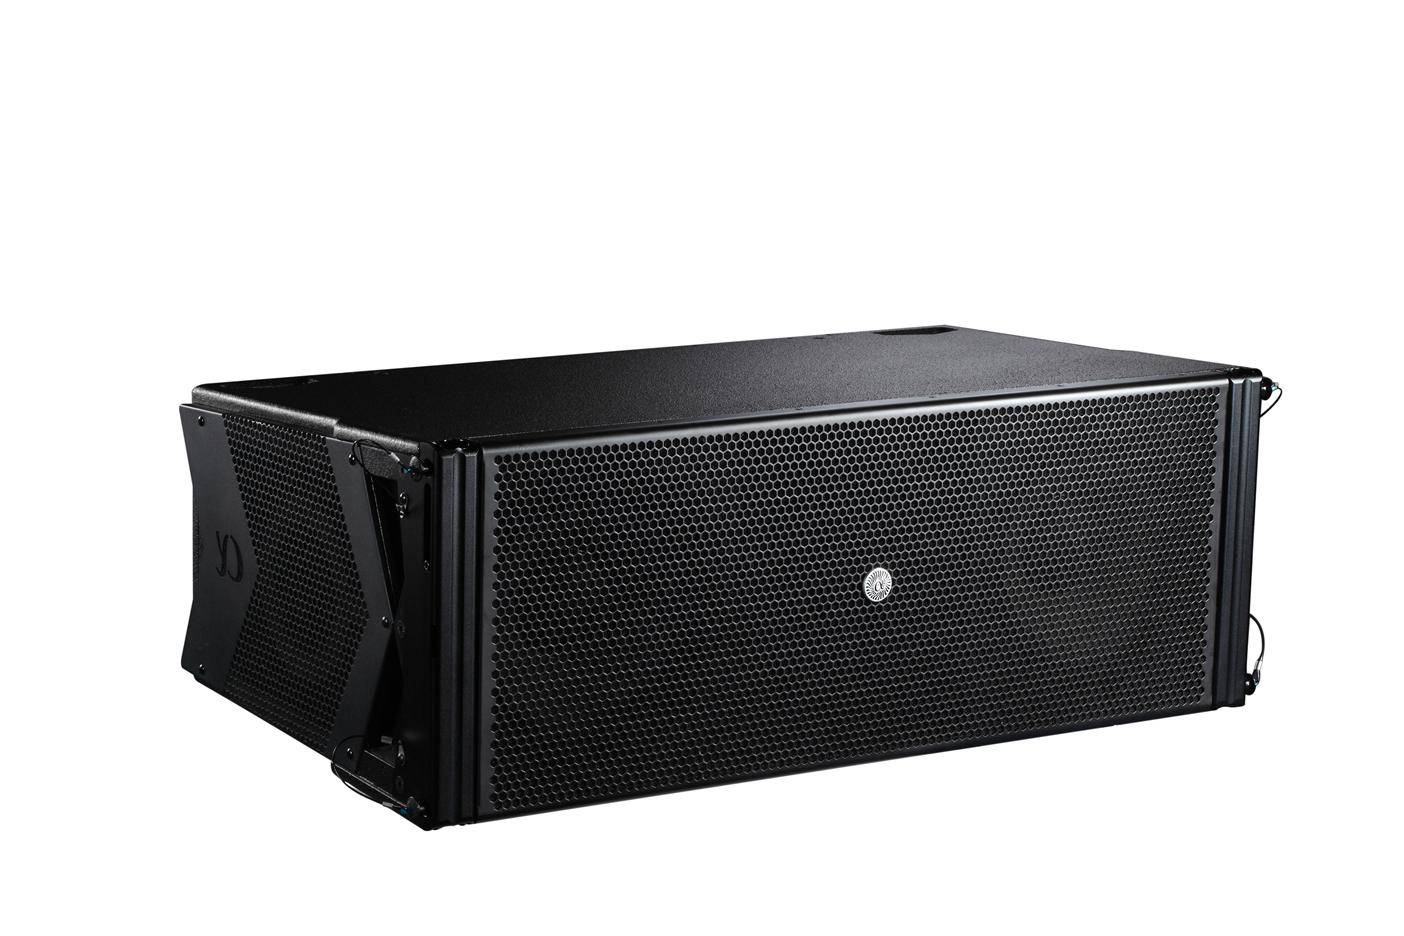 AS 362 3-way line array and symmetrical design speaker audio system